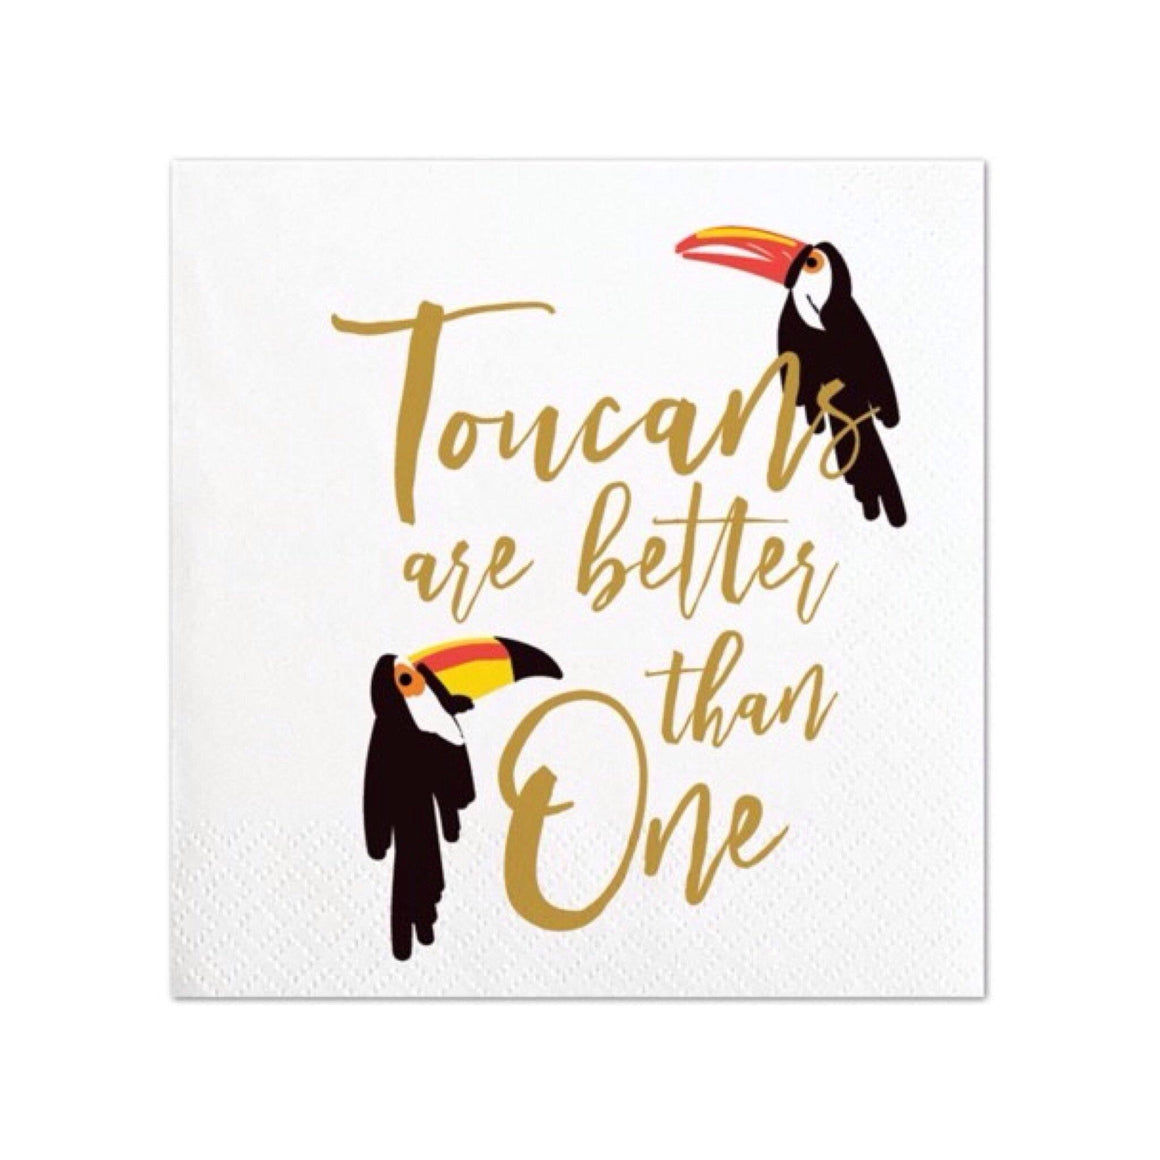 NAPKINS - COCKTAIL TOUCANS ARE BETTER, NAPKINS, Old Country Design - Bon + Co. Party Studio